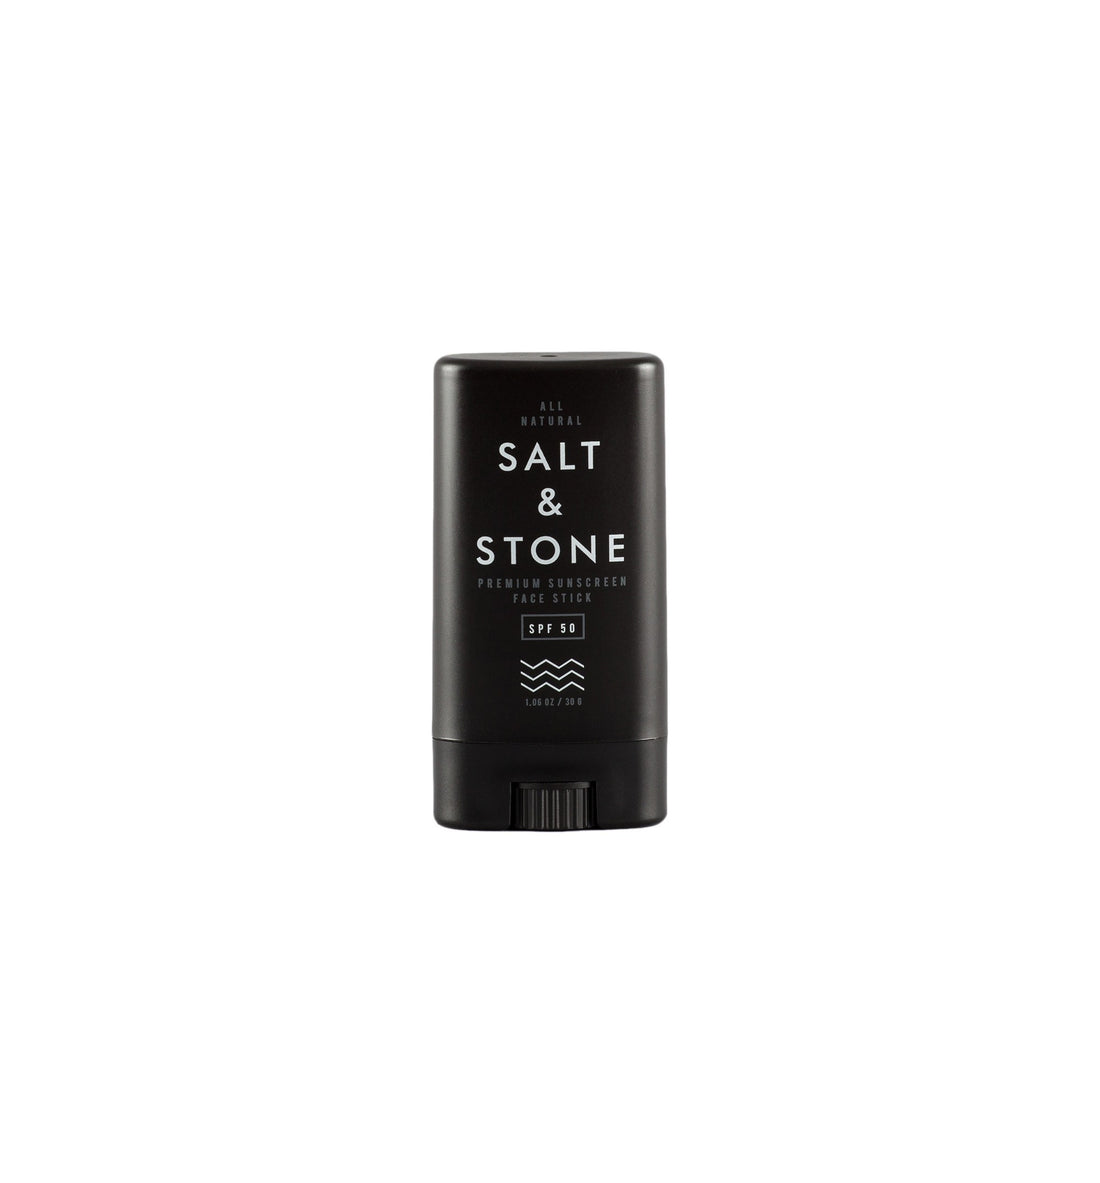 Salt & Stone- All Natural Face Stick SPF 50 - Grooming - Iron and Resin